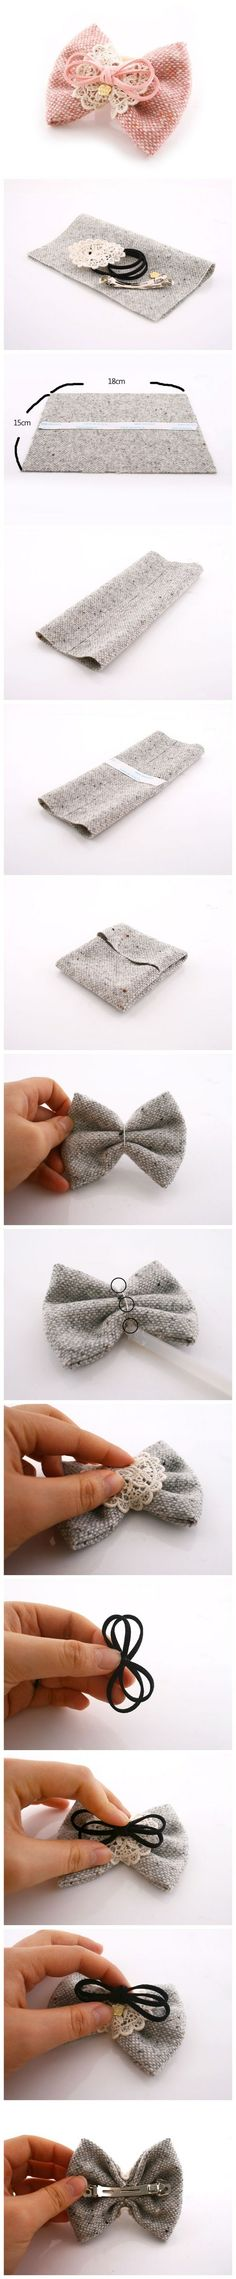 fabric bow tutorial Choose from a collection of best bow tutorials to learn to make stylish bows in many different ways using ribbon, felt, fabric, paper, crochet and knitting. Burlap Bows, Lace Bows, Diy Ribbon, Ribbon Bows, Ribbons, Fabric Bows, Fabric Flowers, Felt Fabric, Diy